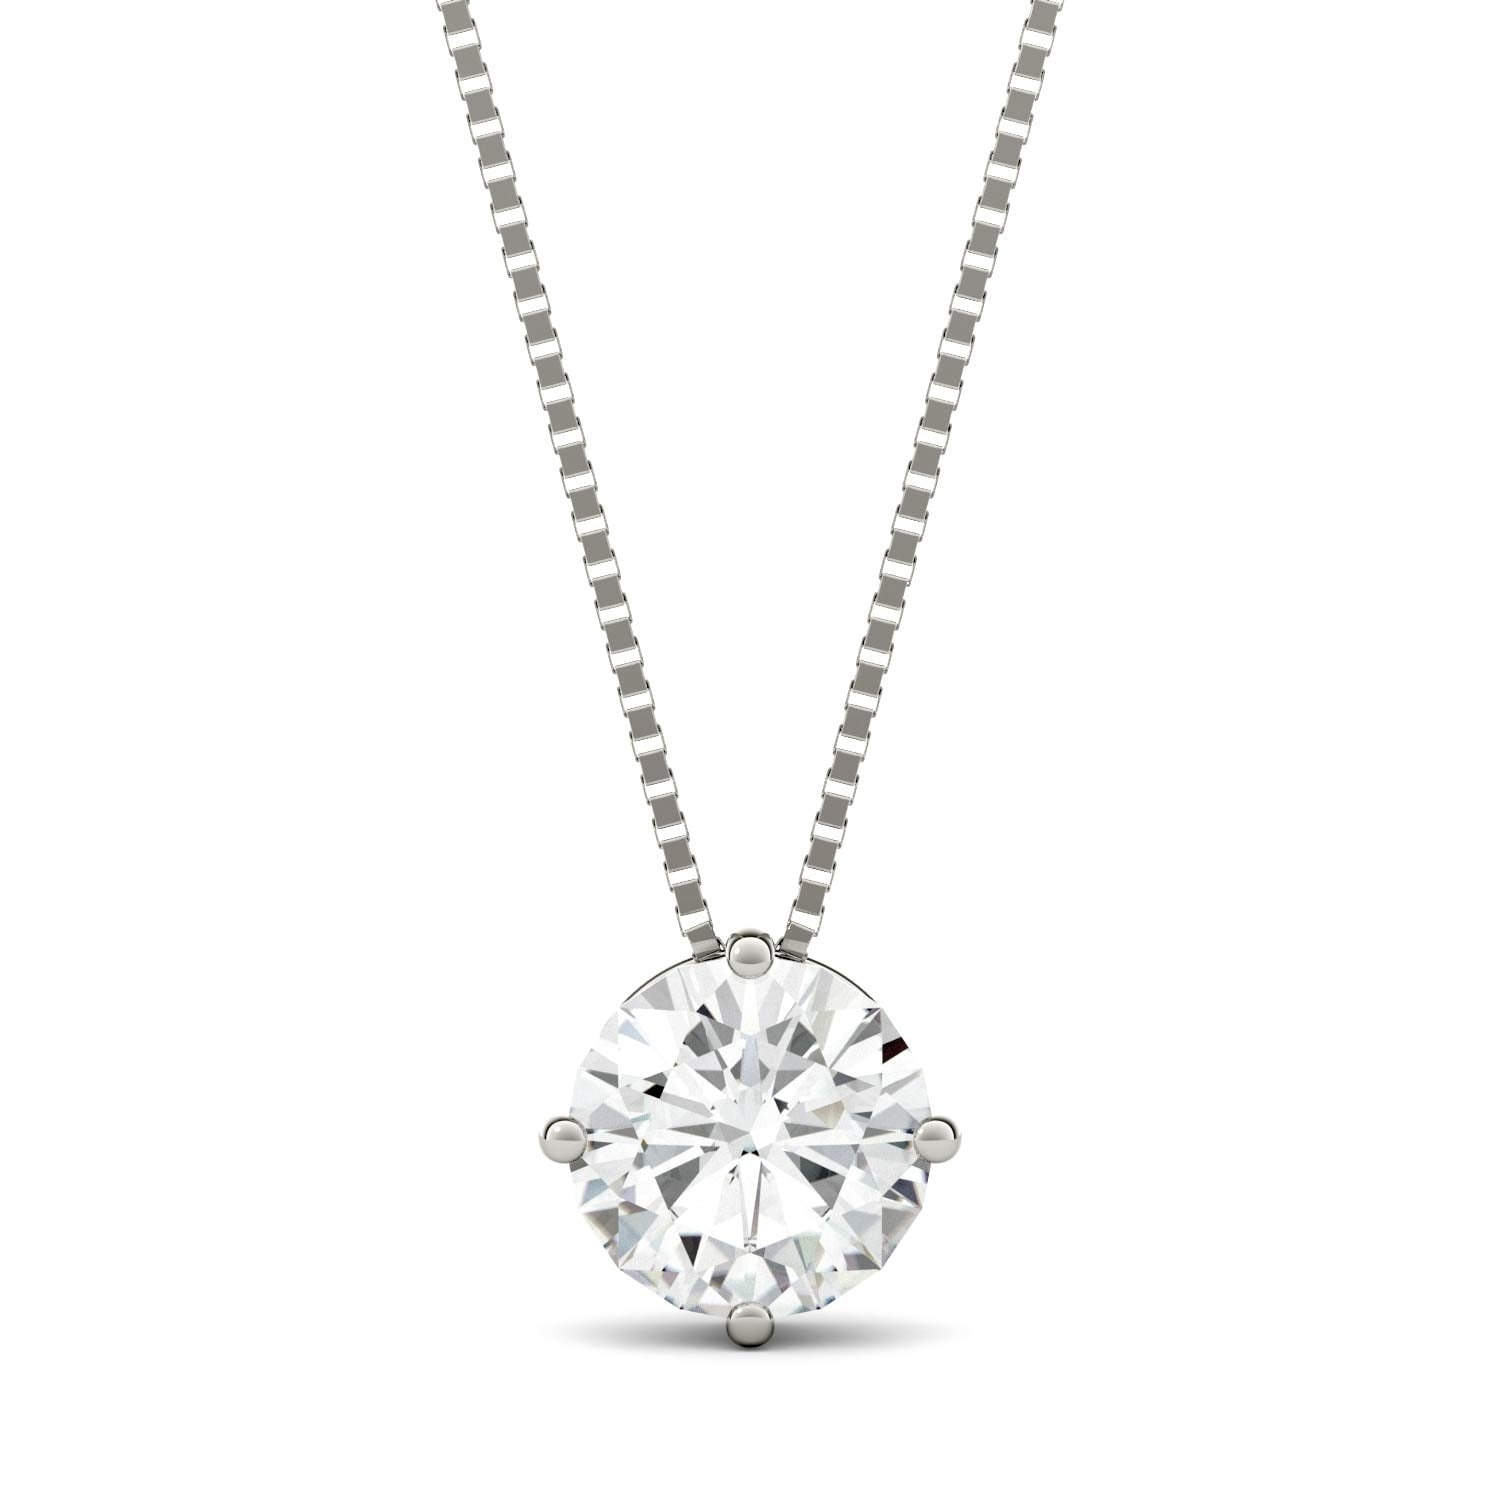 necklace one colvard amazon by dp com charles white jewelry forever gold moissanite dew round pendant